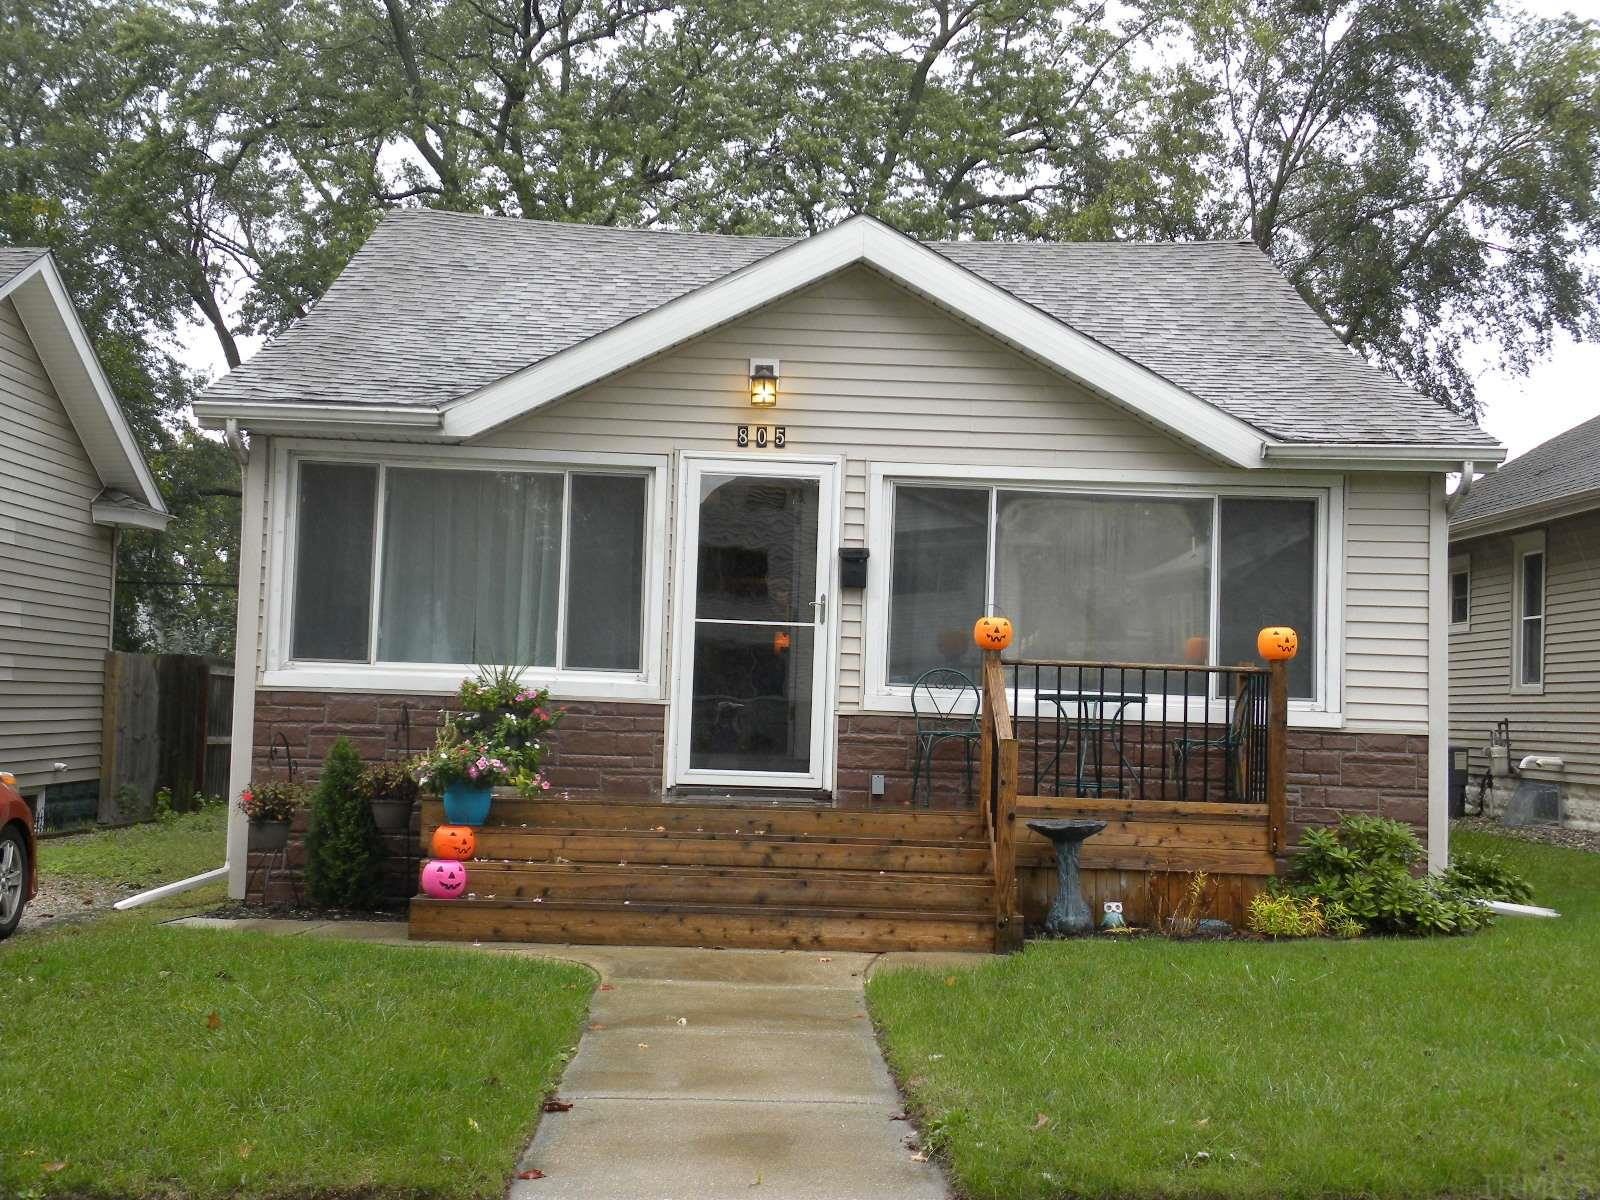 805 S 34th St South Bend, IN 46615